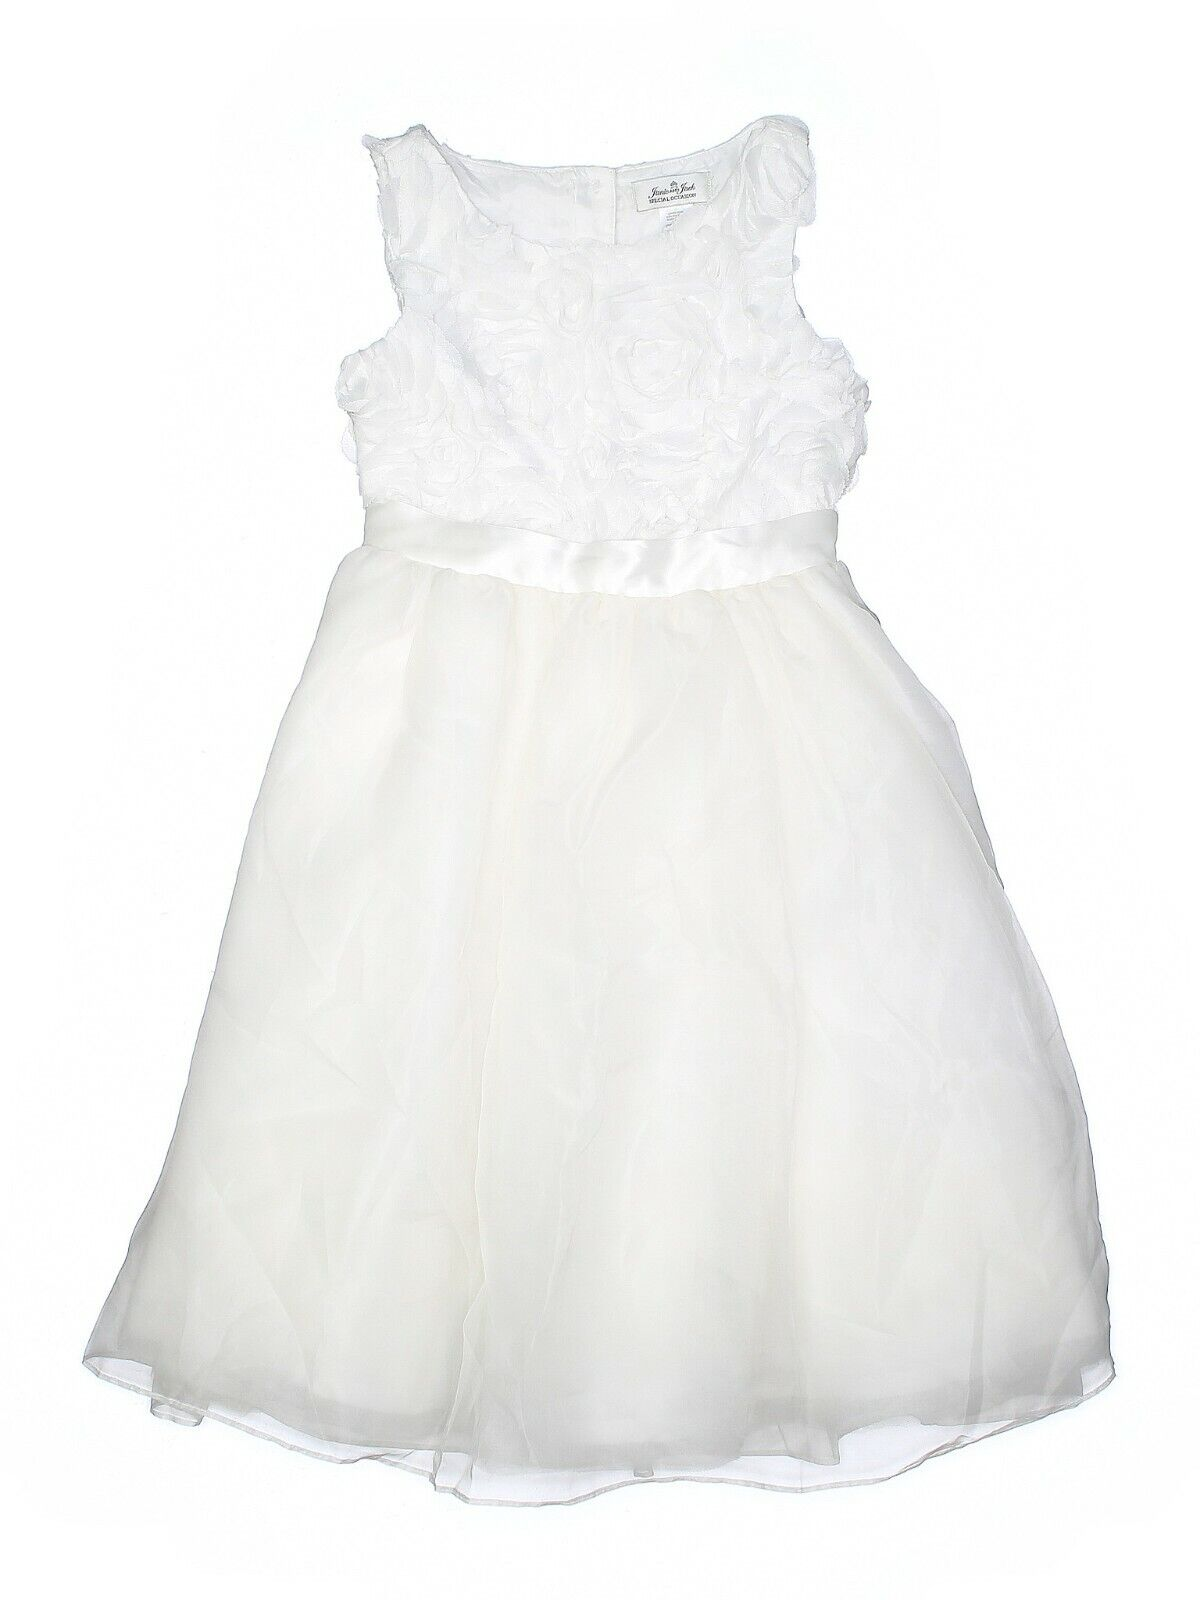 Janie and Jack SPECIAL OCCASION ROSETTE DRES Flower Girl First Communion 5